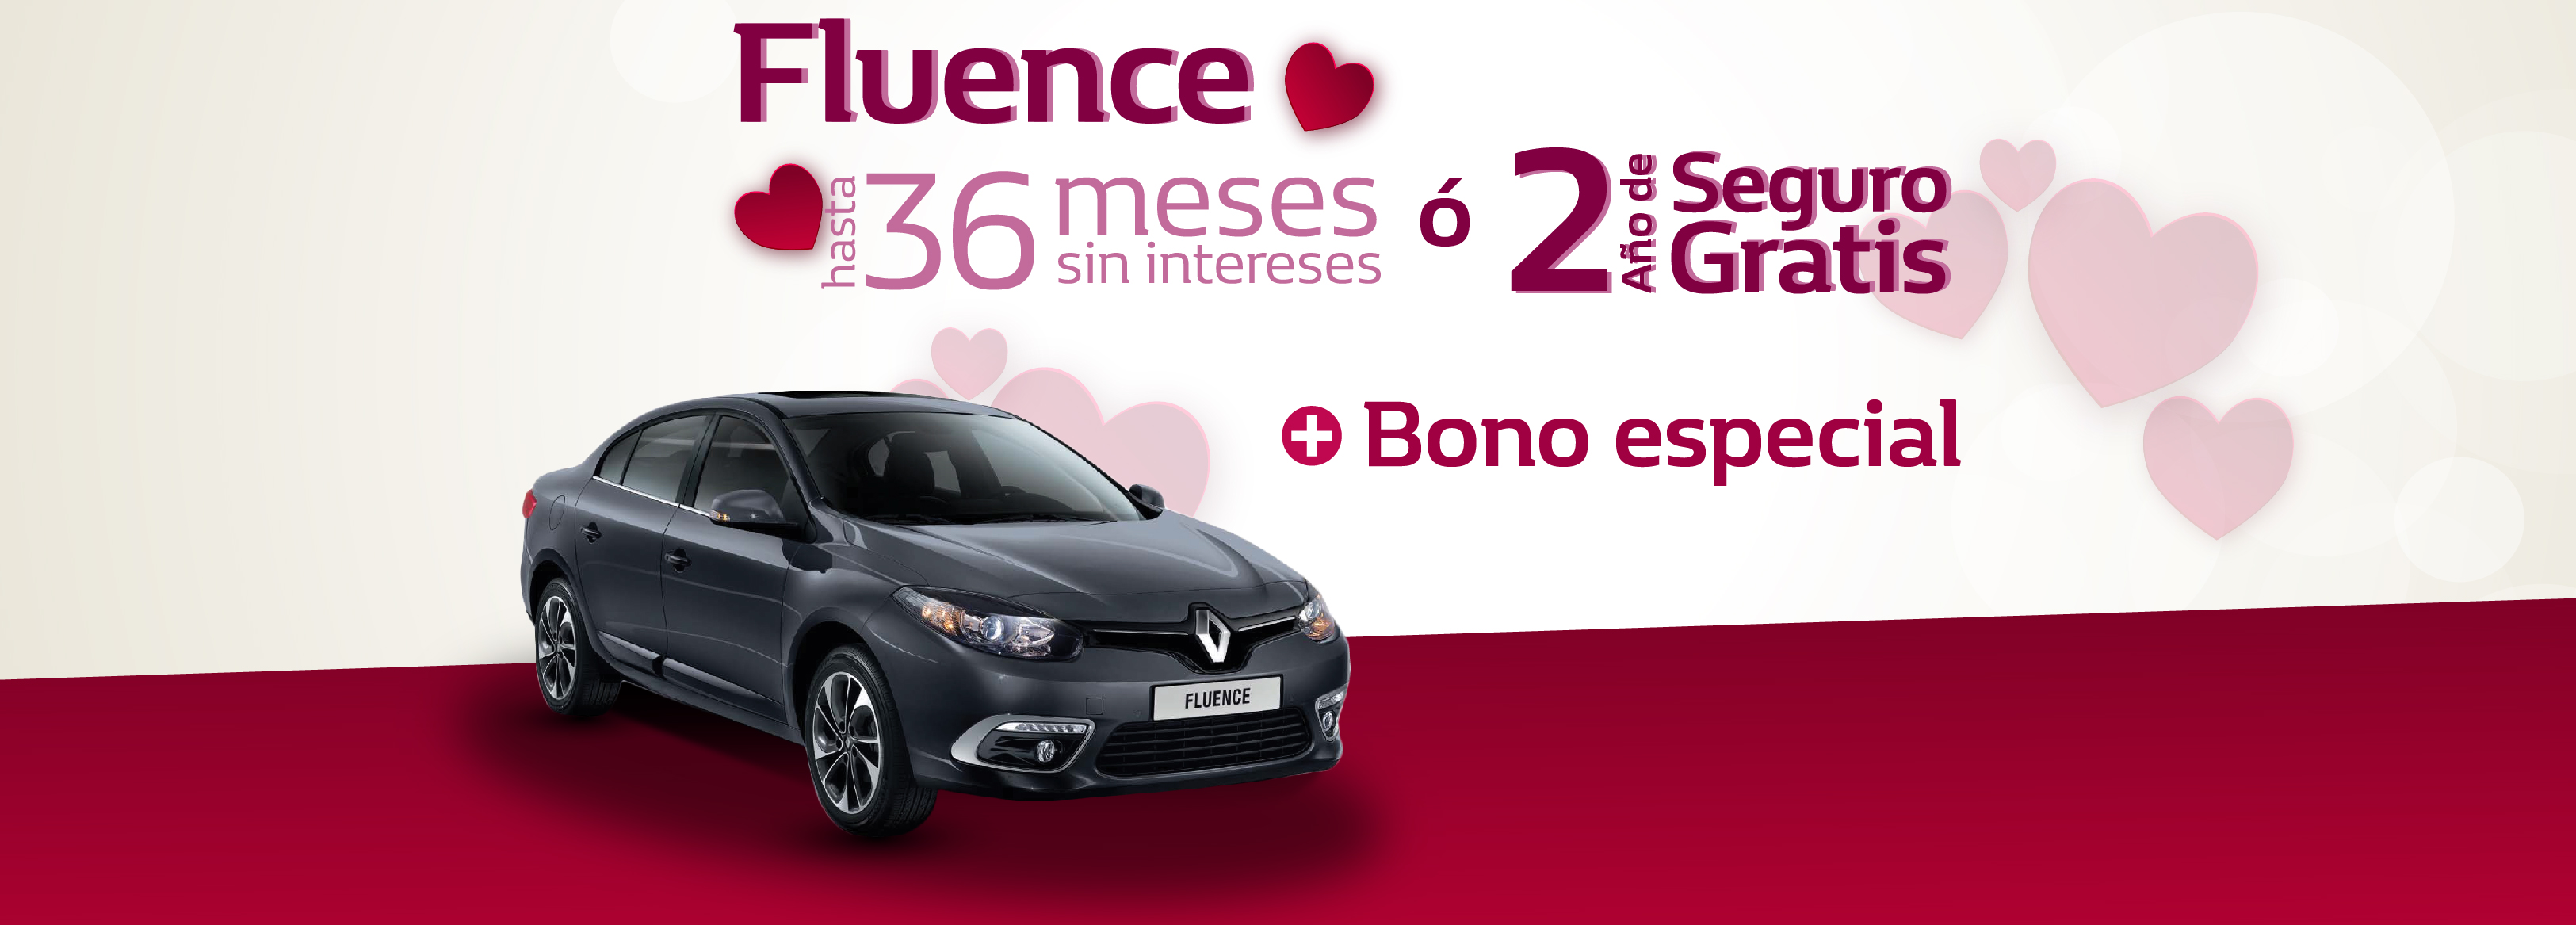 fluence, 2016, renault, nissan march